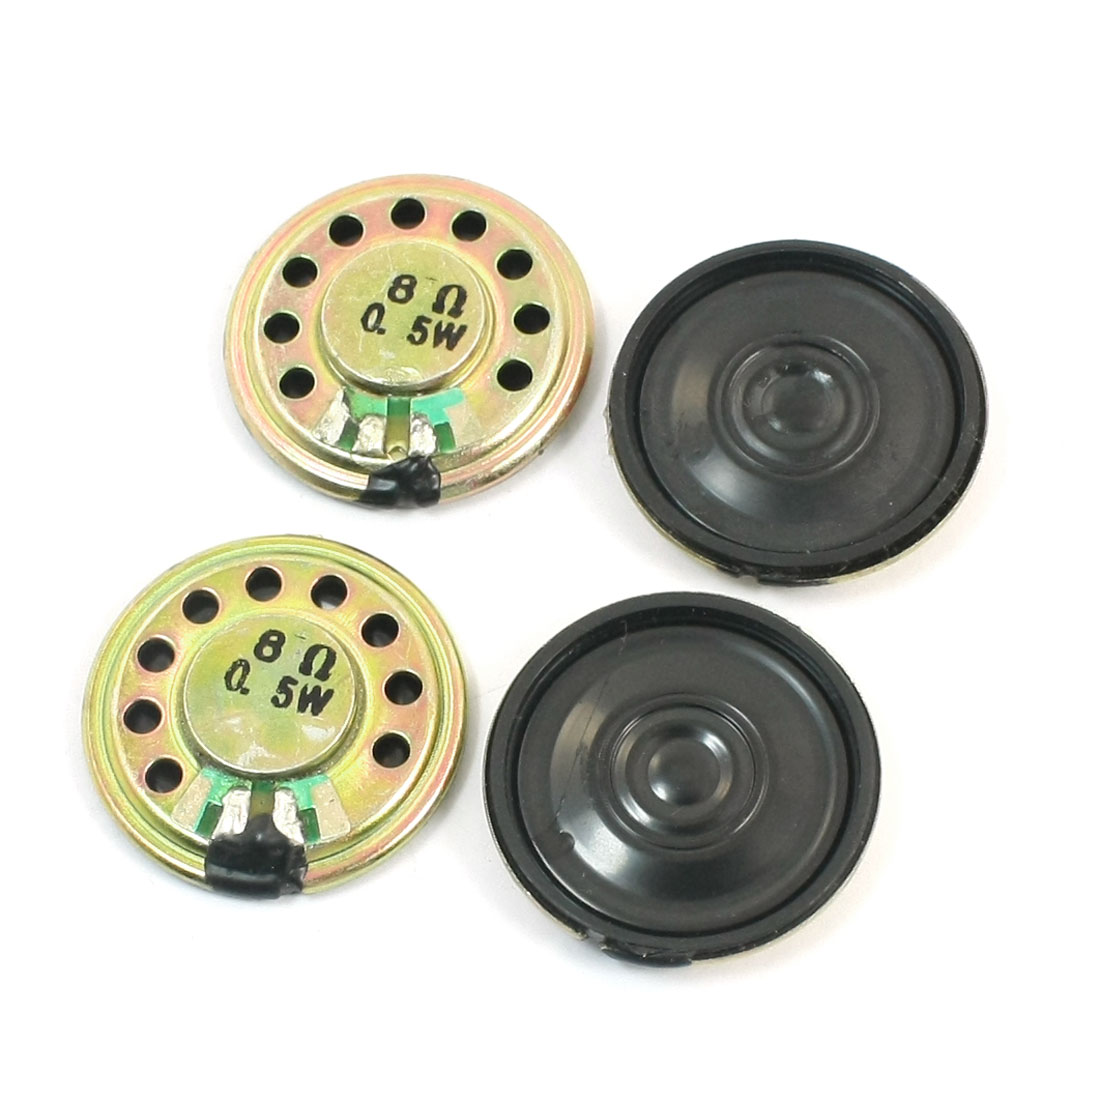 4Pcs 0.5W 8 Ohm 28mm Dia Round Metal Internal Magnet Electronic Toys Music Player Mini Speaker Loudspeaker